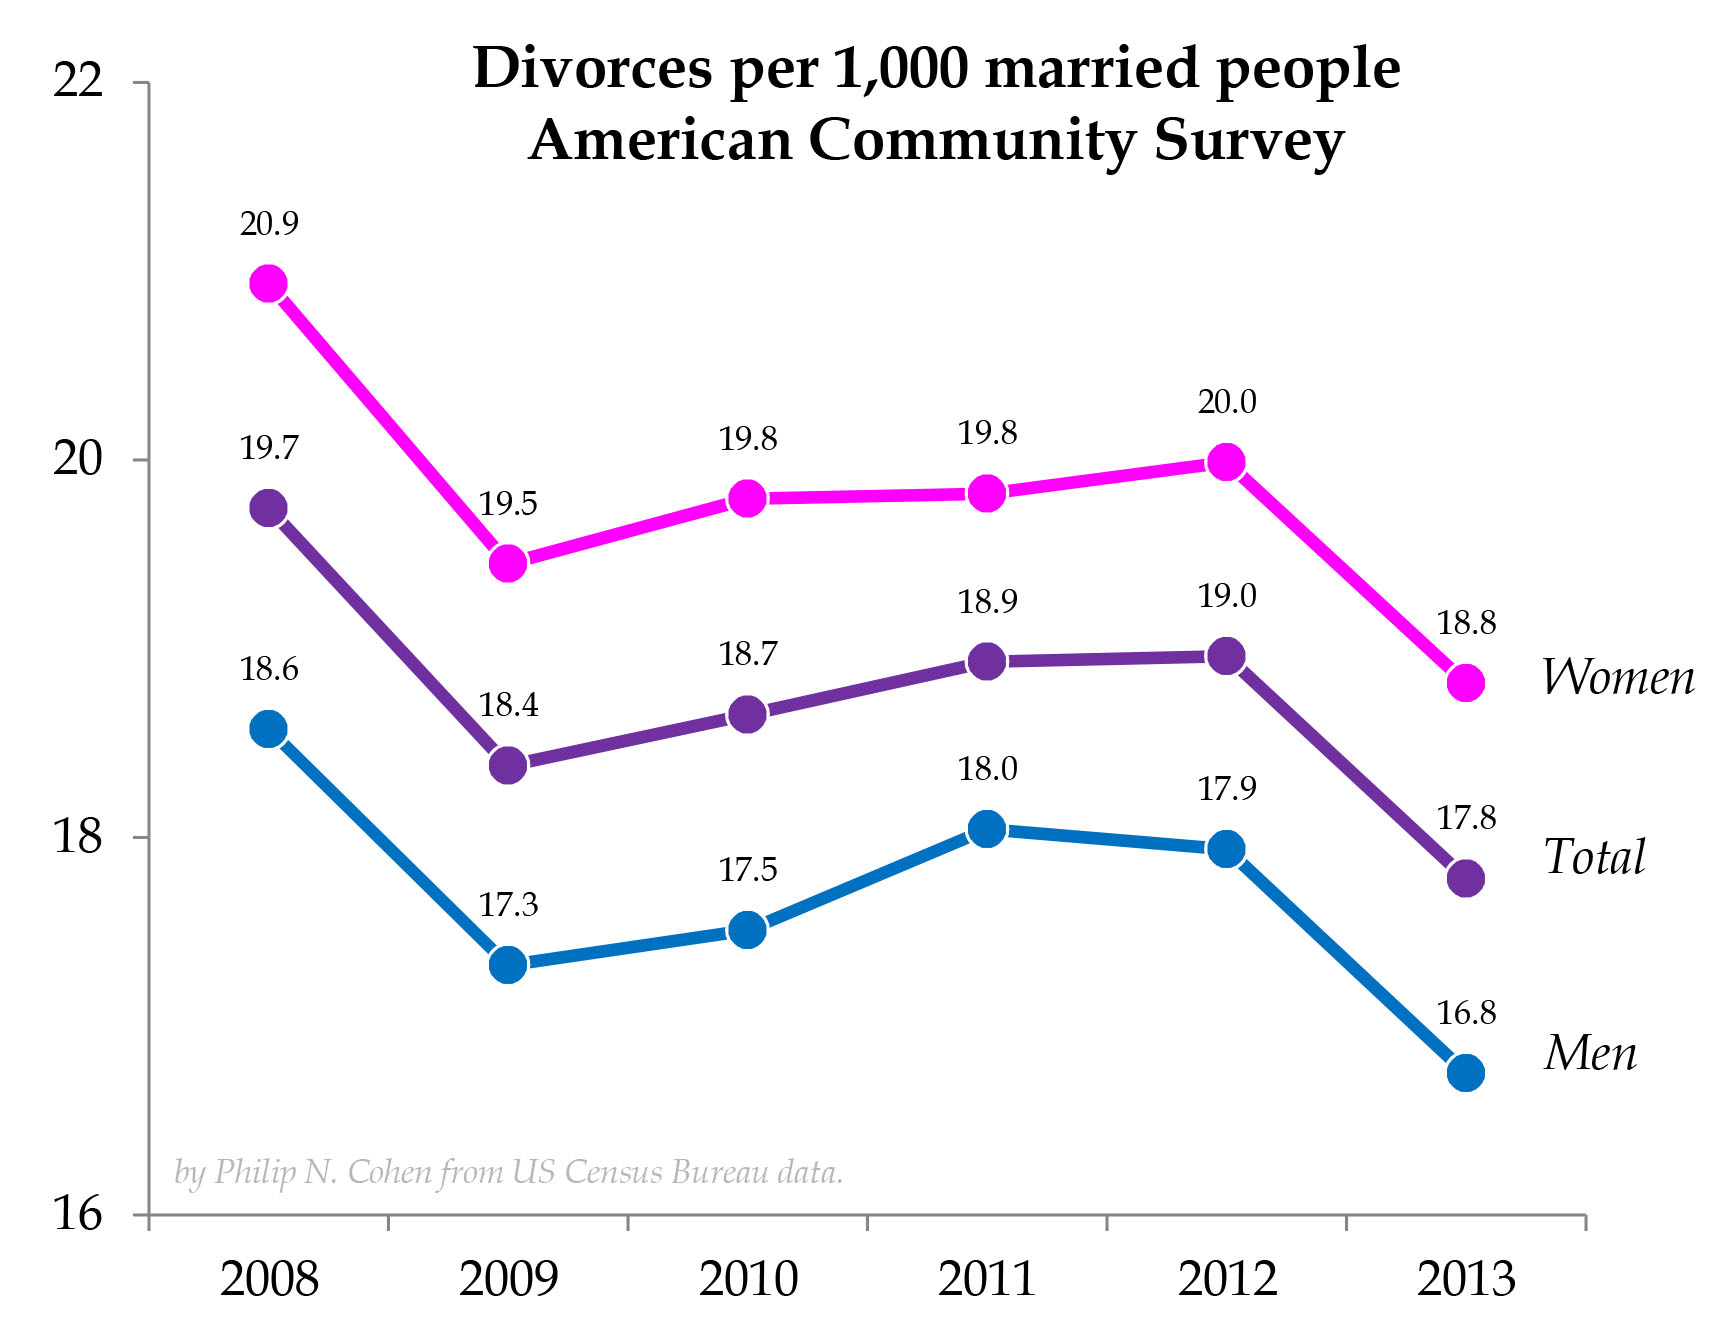 Statistics for divorce rates